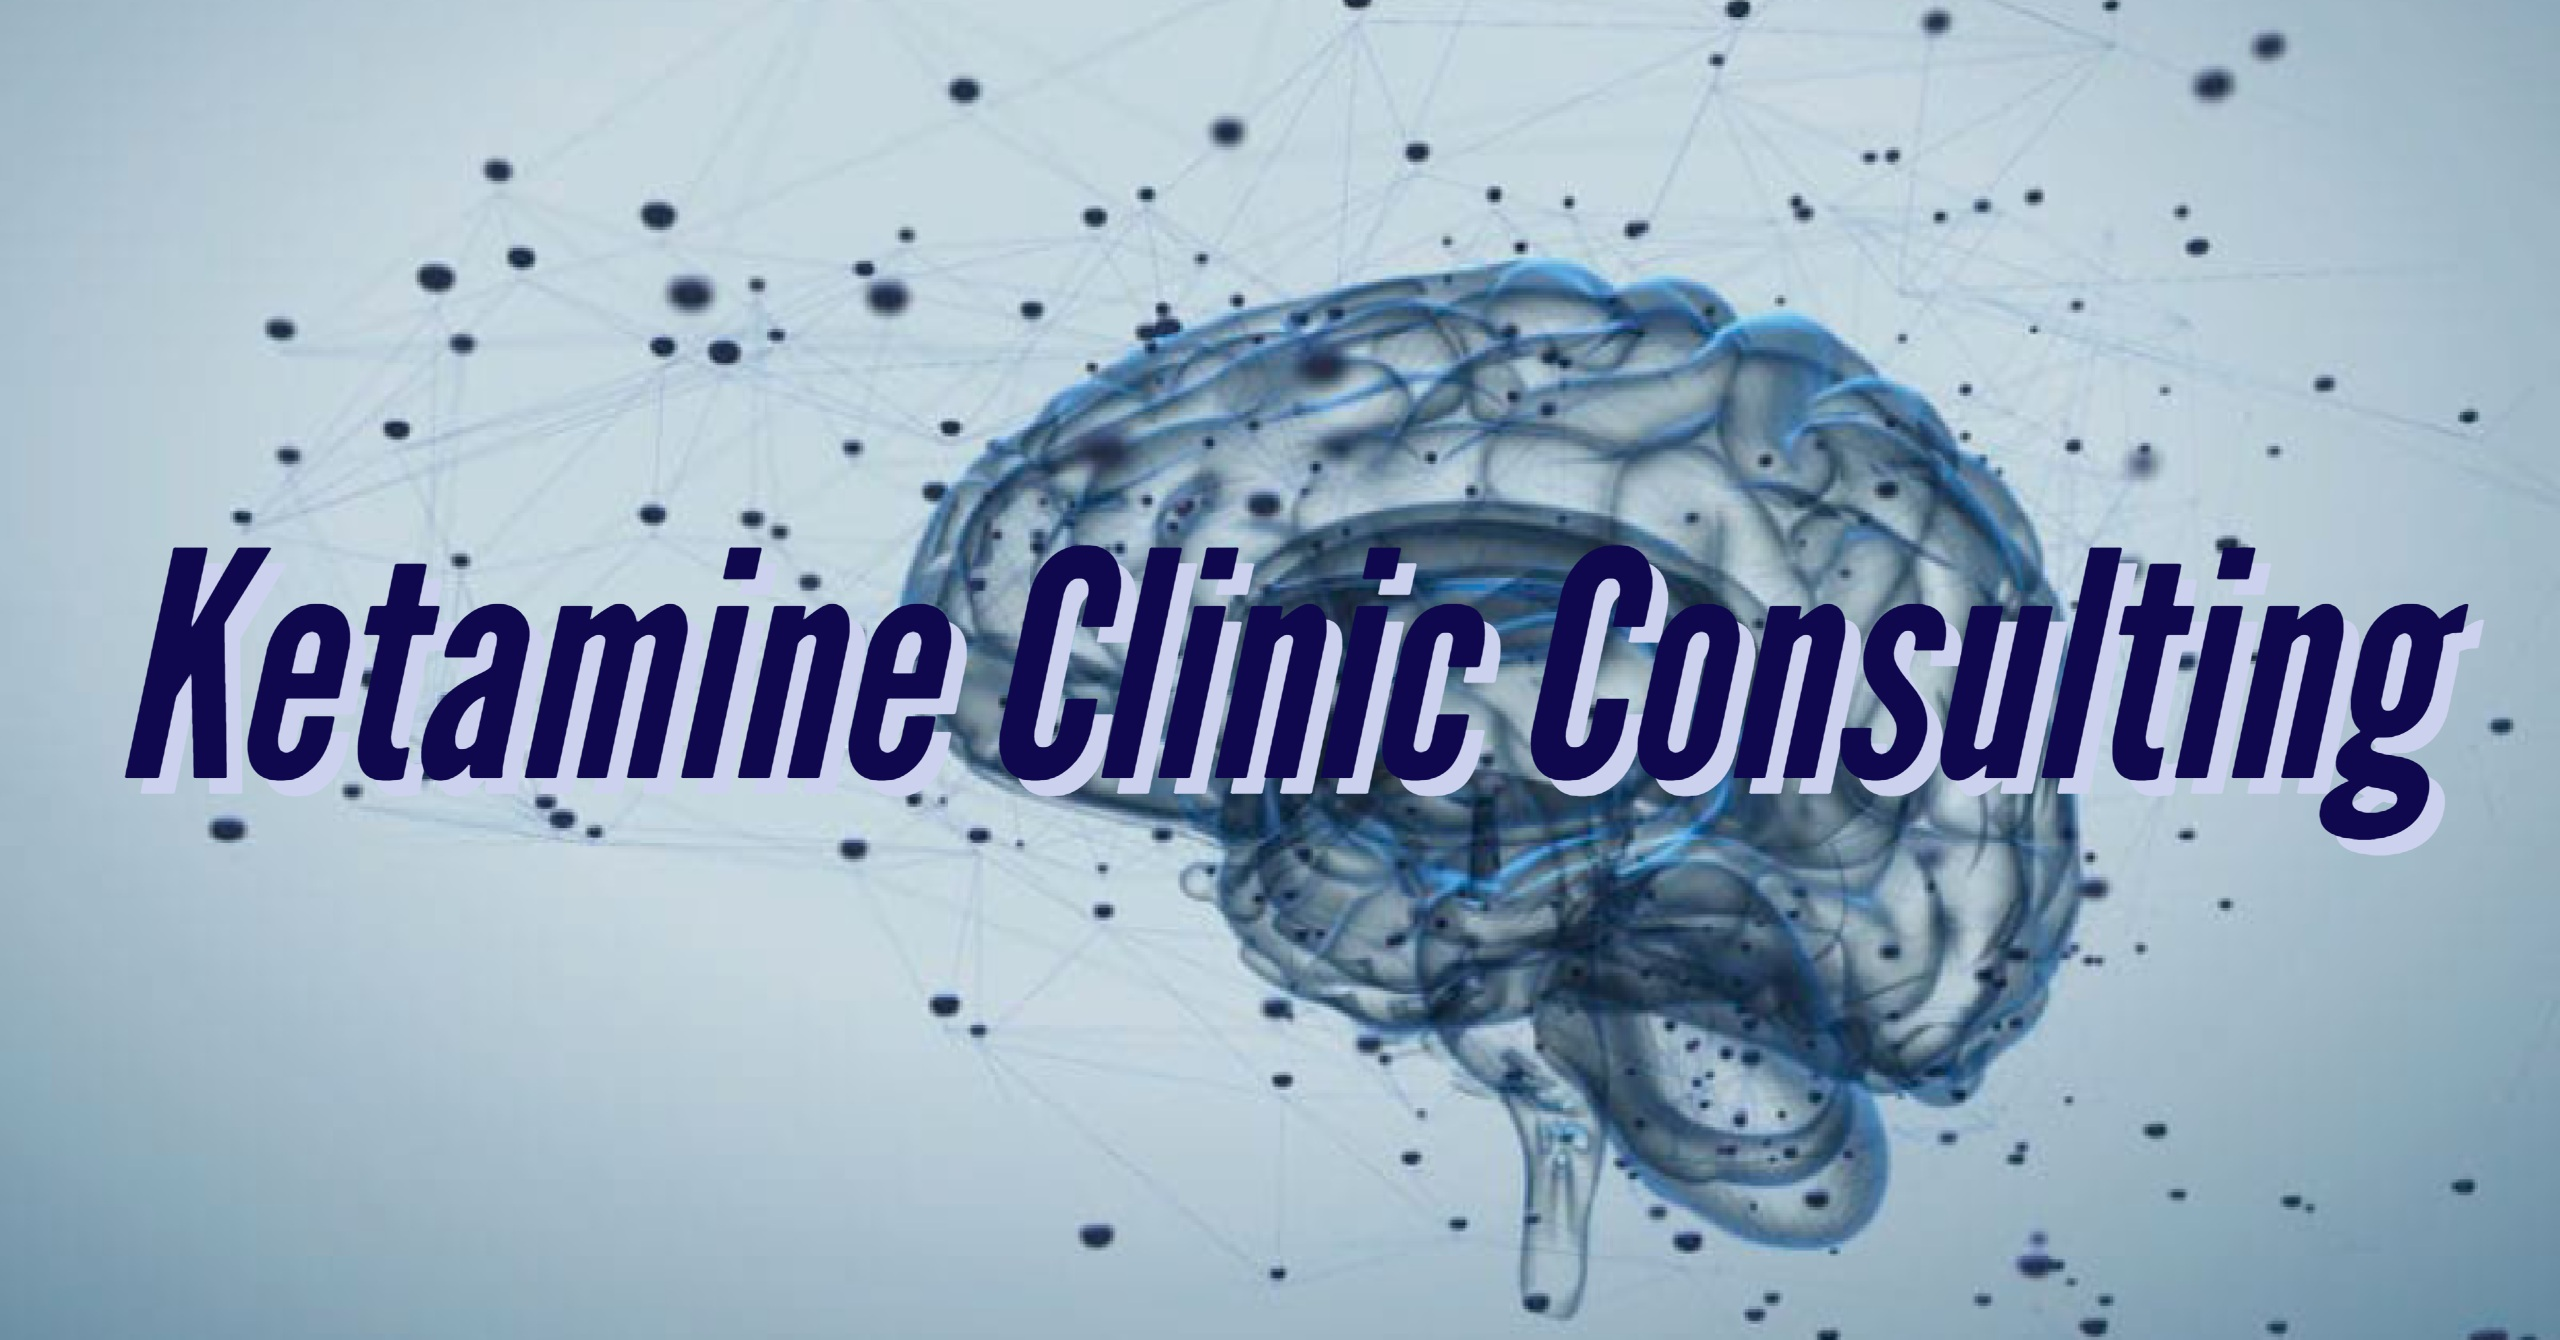 Ketamine Infusion Clinic Consulting